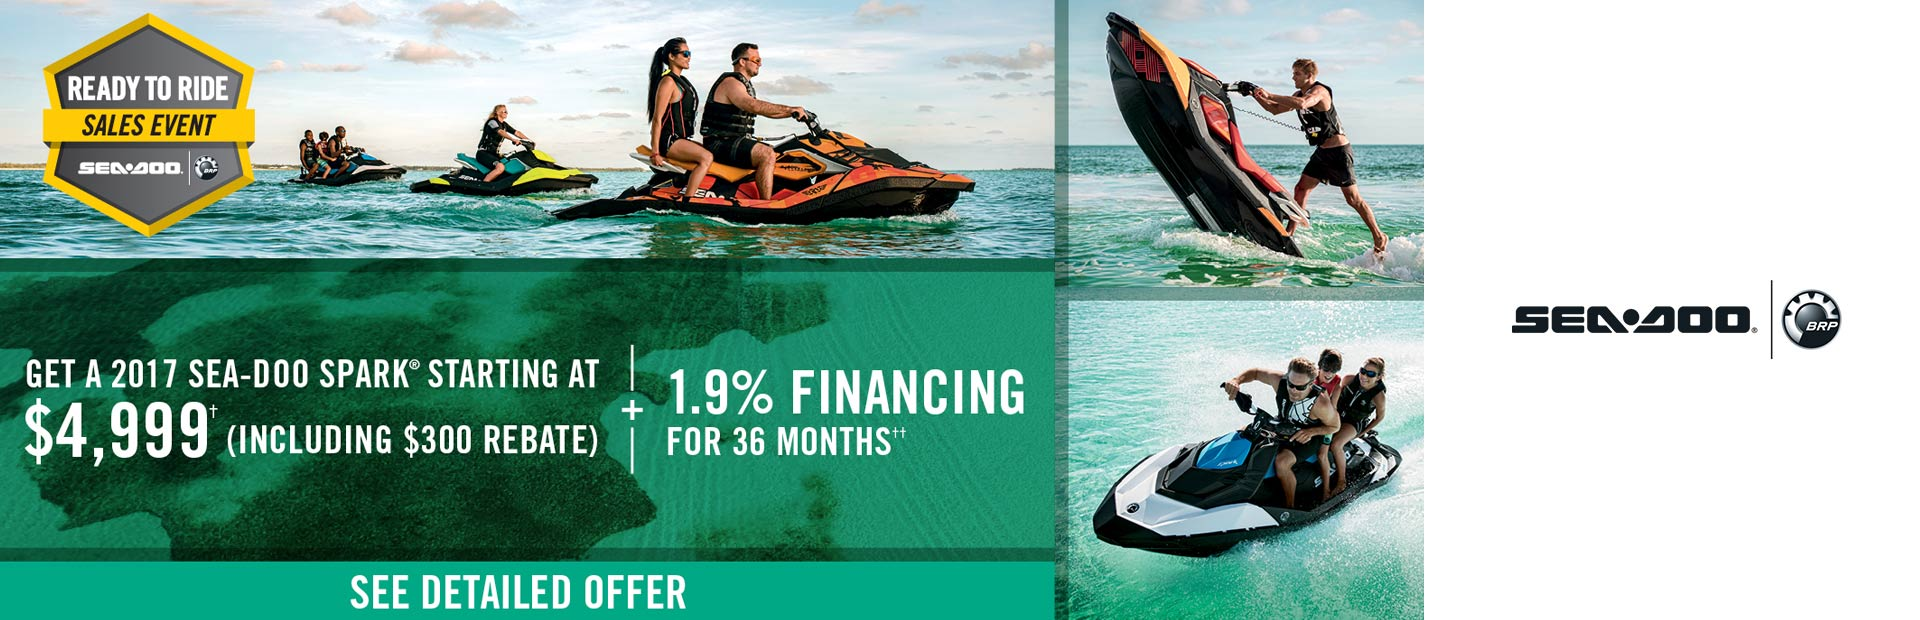 Sea-Doo: Ready to Ride Sales Event - Sea-Doo Spark